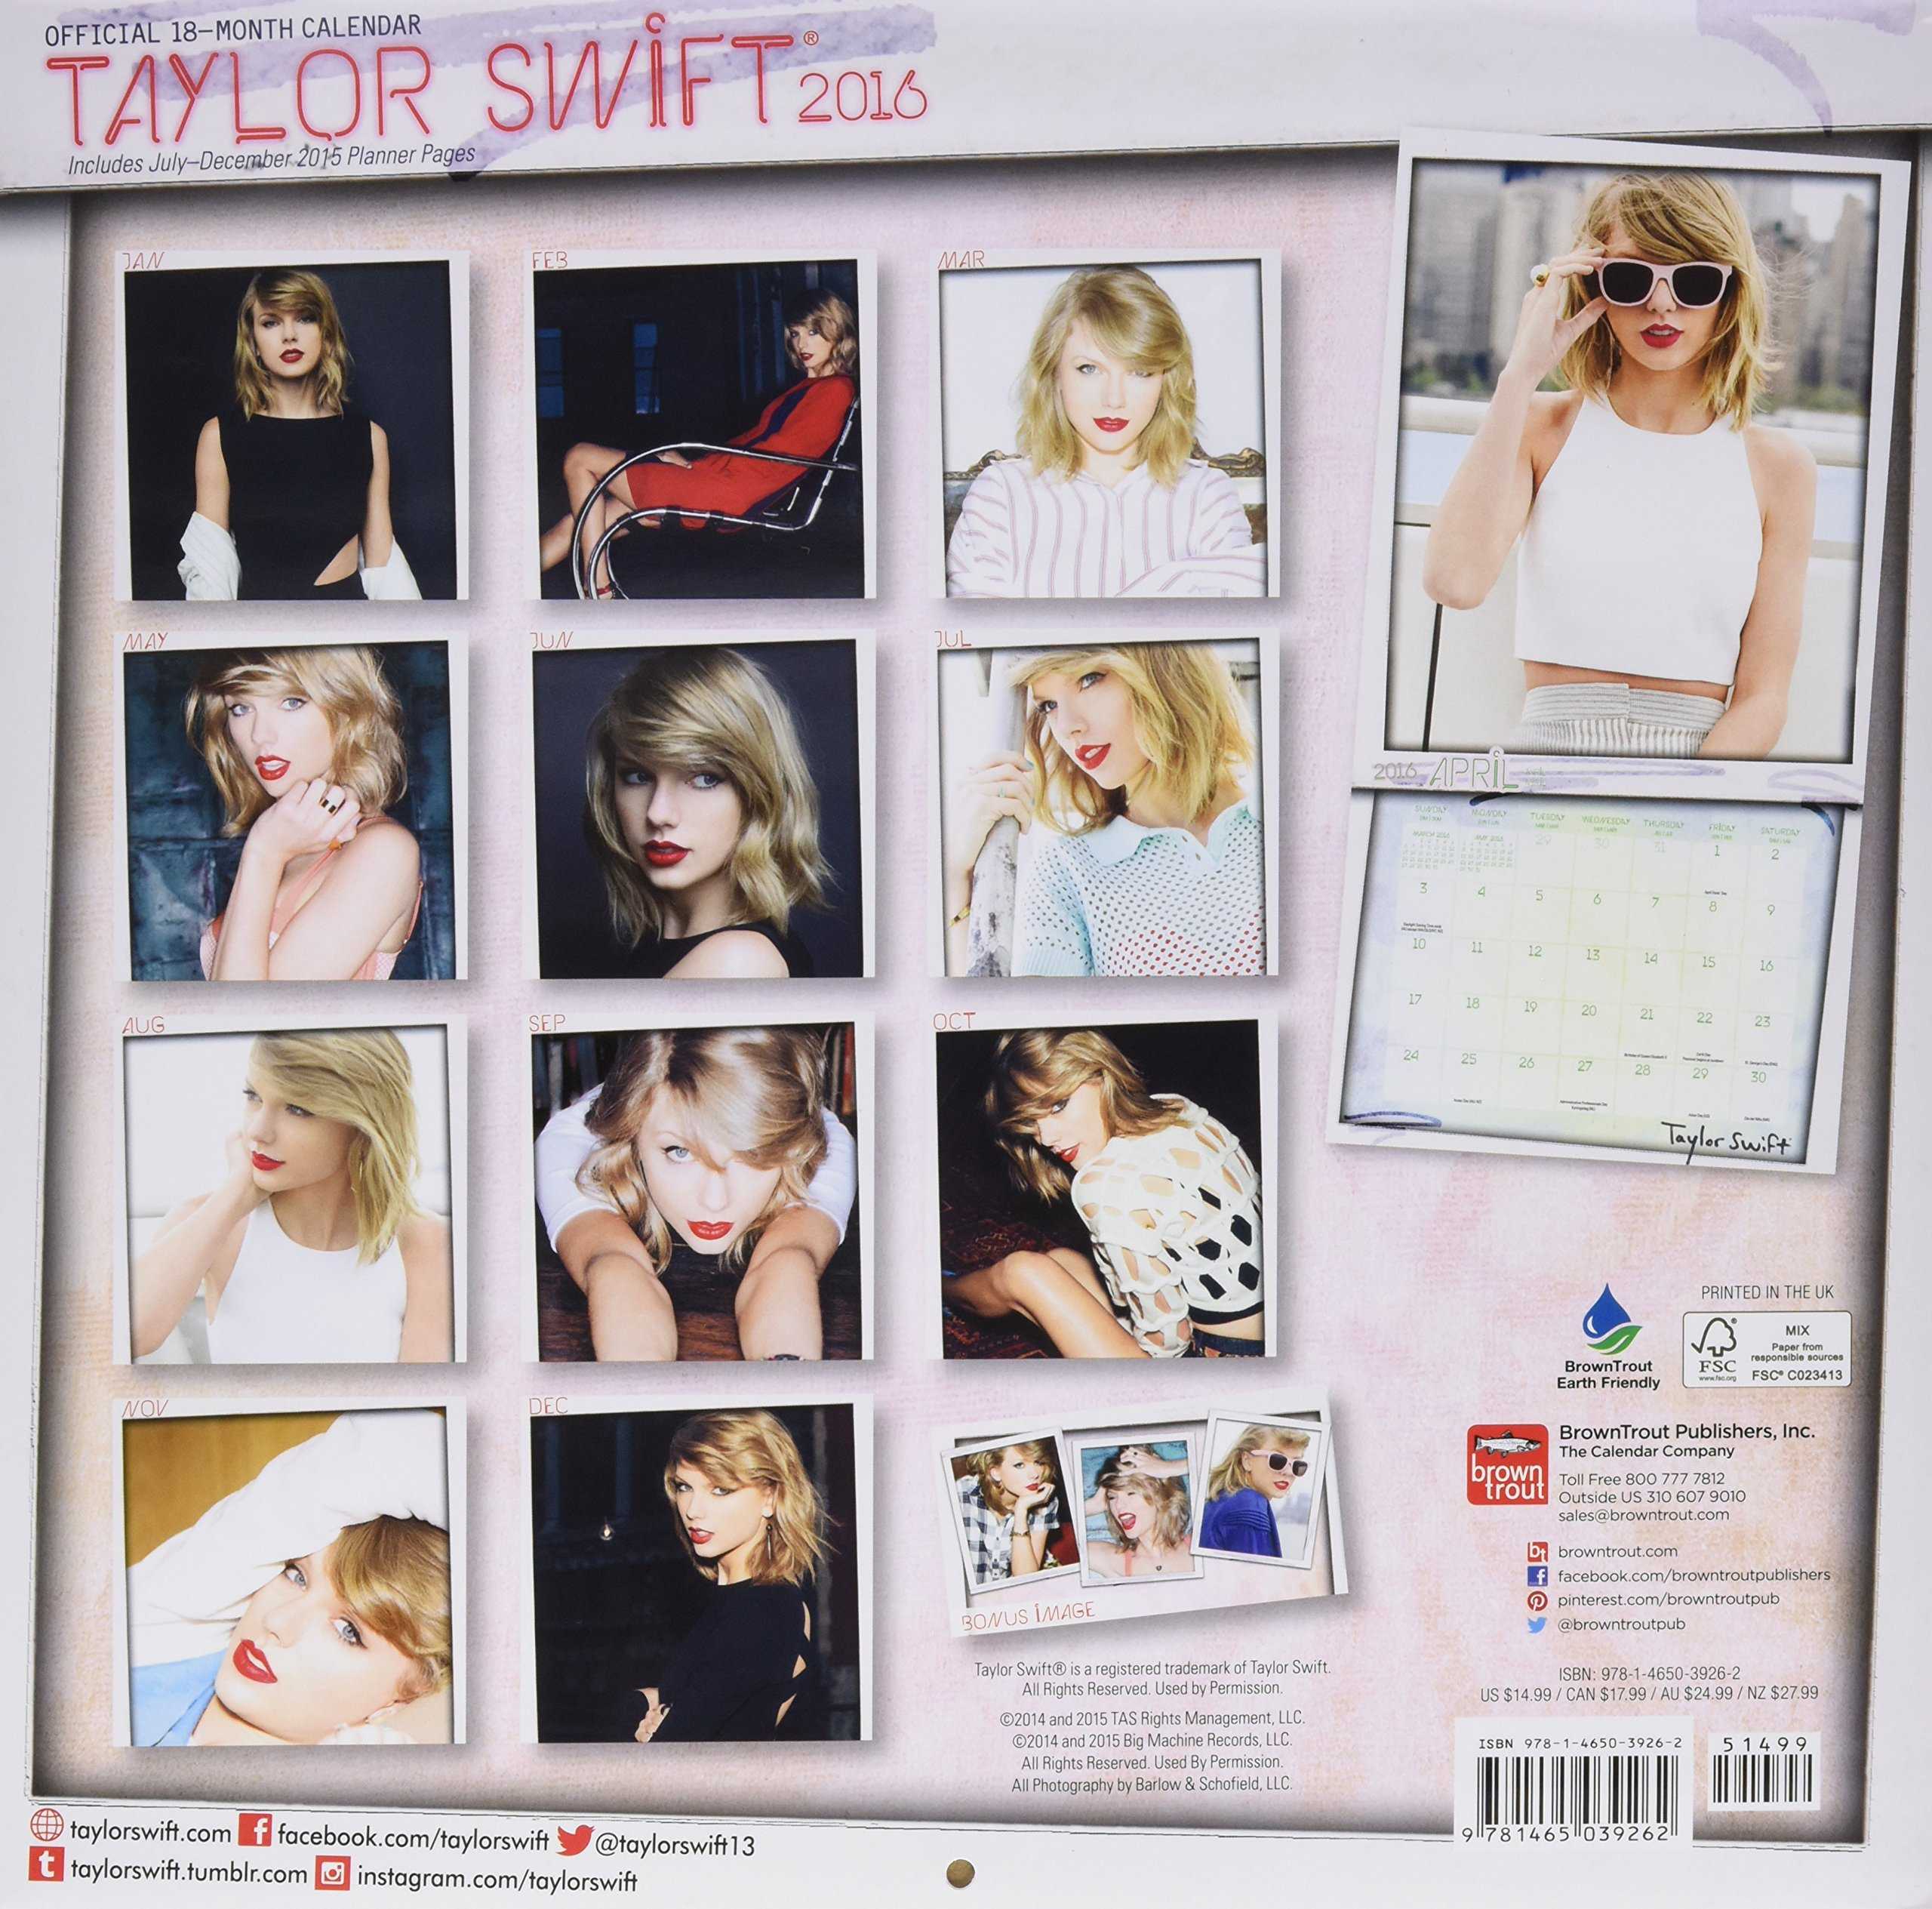 amazon taylor swift official 2016 calendar browntrout publishers